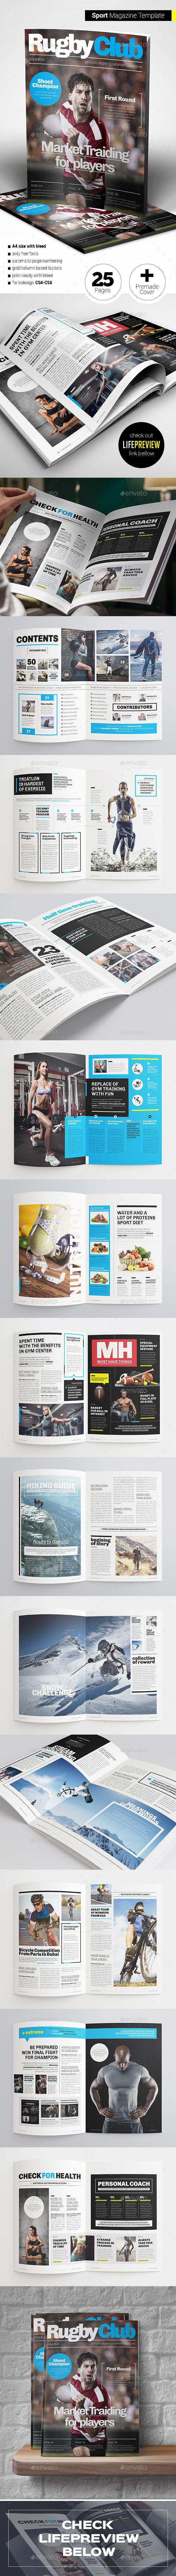 Sport Magazine — InDesign INDD #creative #sport targeted • Available here → https://graphicriver.net/item/sport-magazine/13883213?ref=pxcr